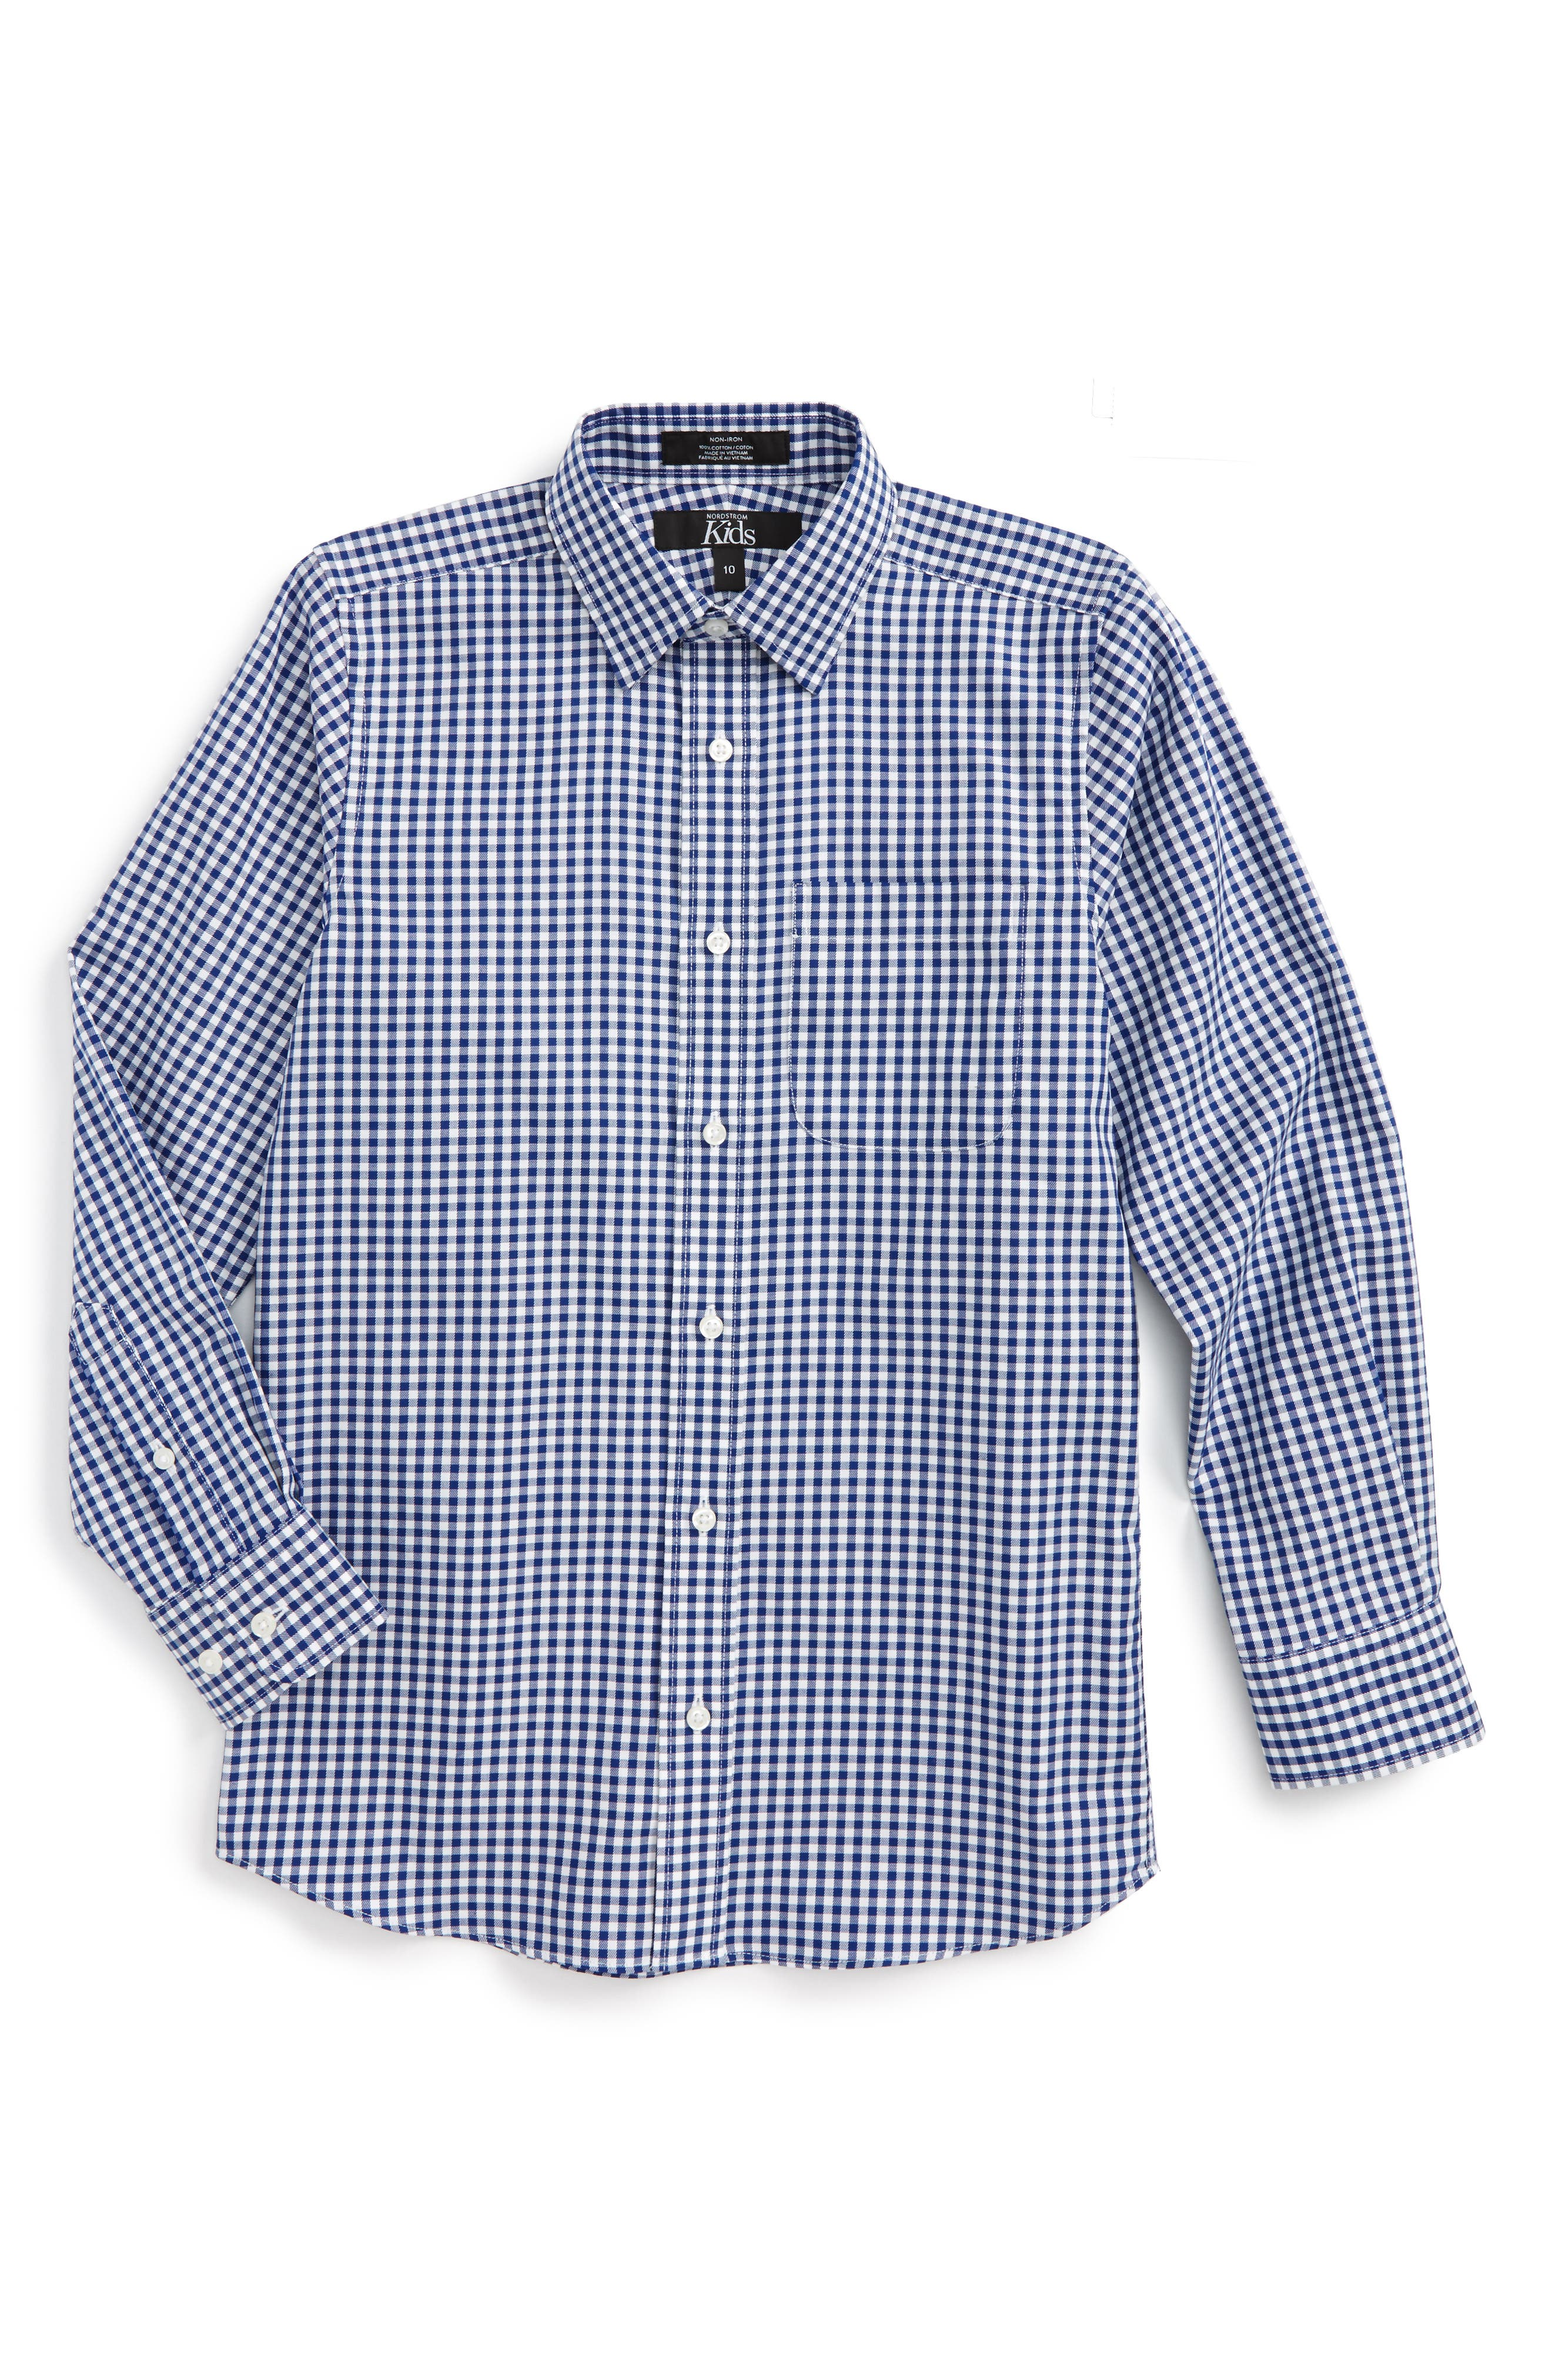 Alternate Image 1 Selected - Nordstrom Non-Iron Check Dress Shirt (Big Boys)